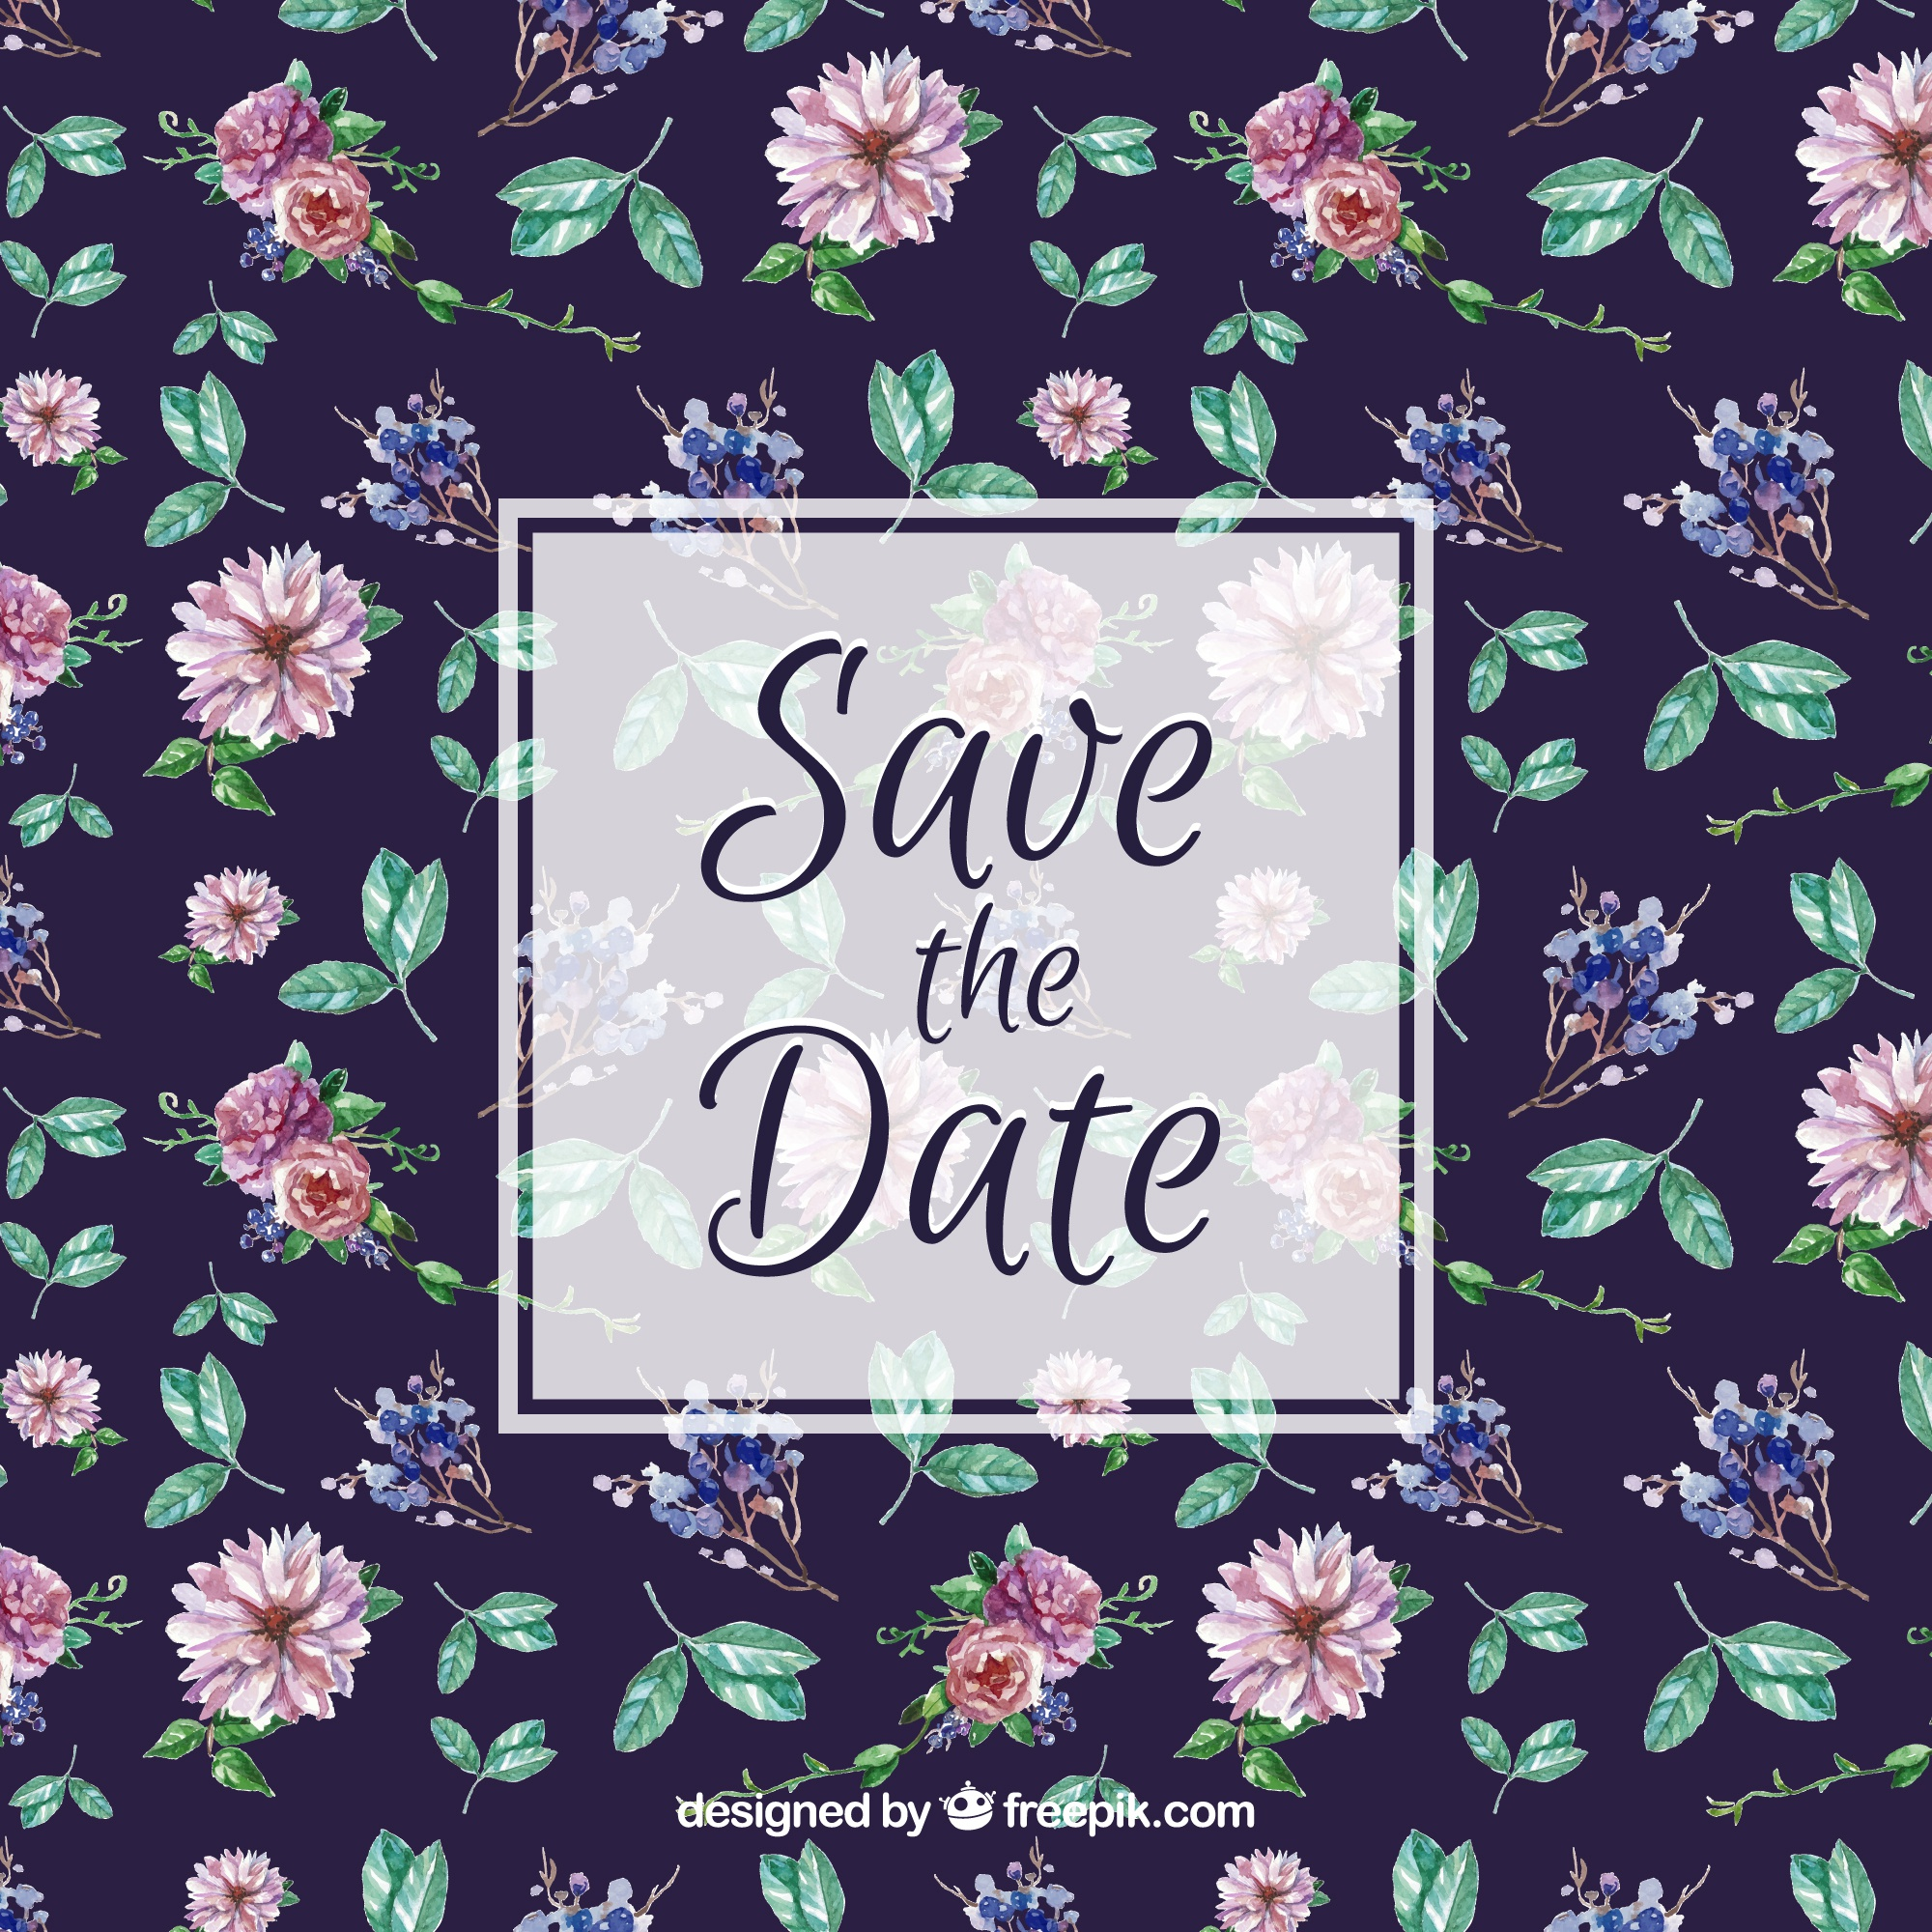 Floral pattern for wedding invitation